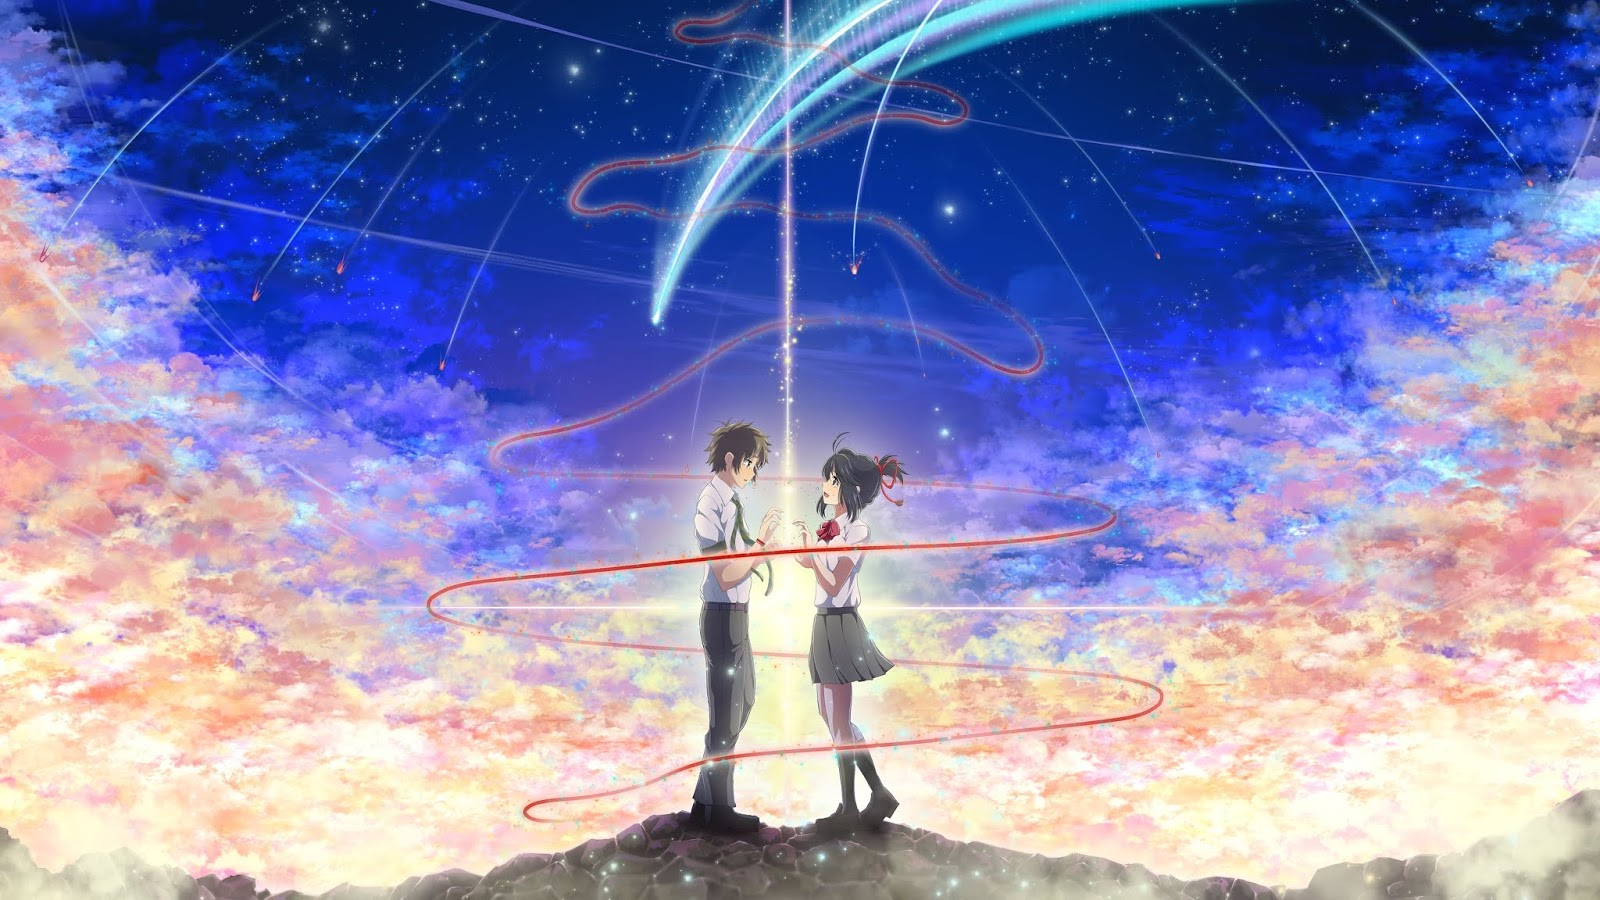 AowVN%2B%252833%2529 - [ Hình Nền ] Anime Your Name. - Kimi no Nawa full HD cực đẹp | Anime Wallpaper